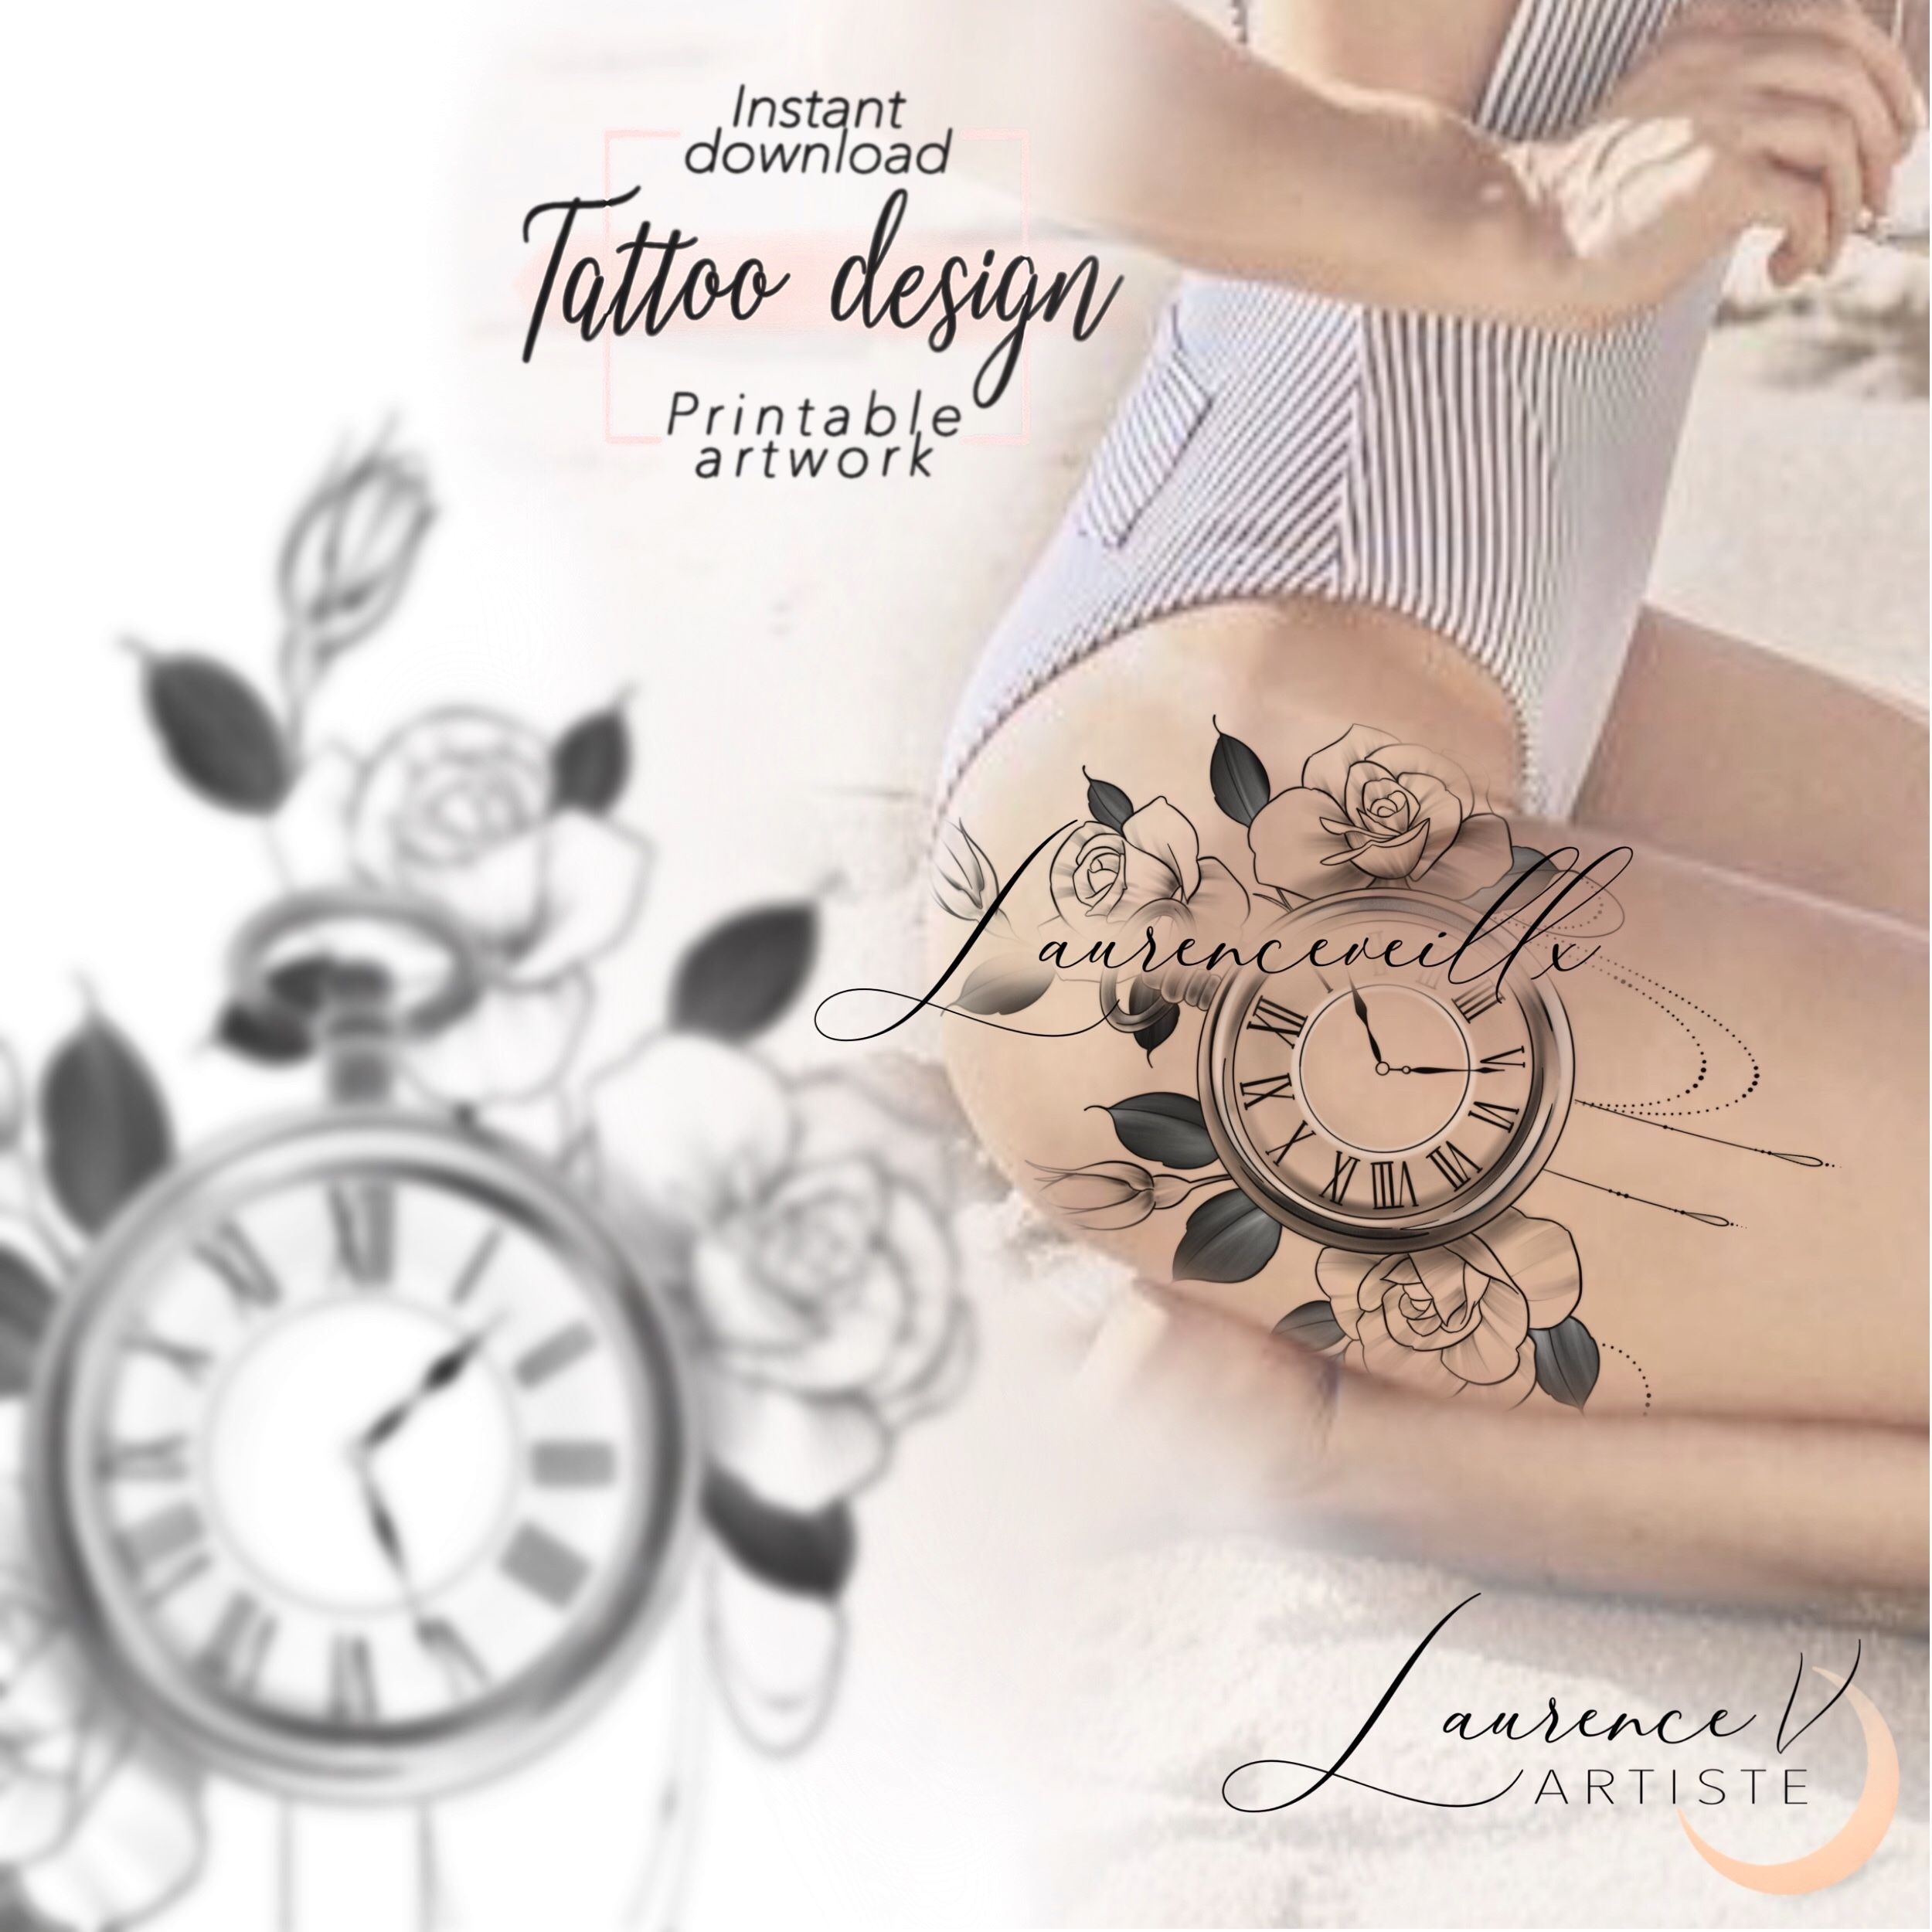 Instant Download Tattoo Design Clock And Roses Floral Tattoo Printable Stencil Template Tattoo Designs Half Sleeve Tattoo Template Printable Tattoos